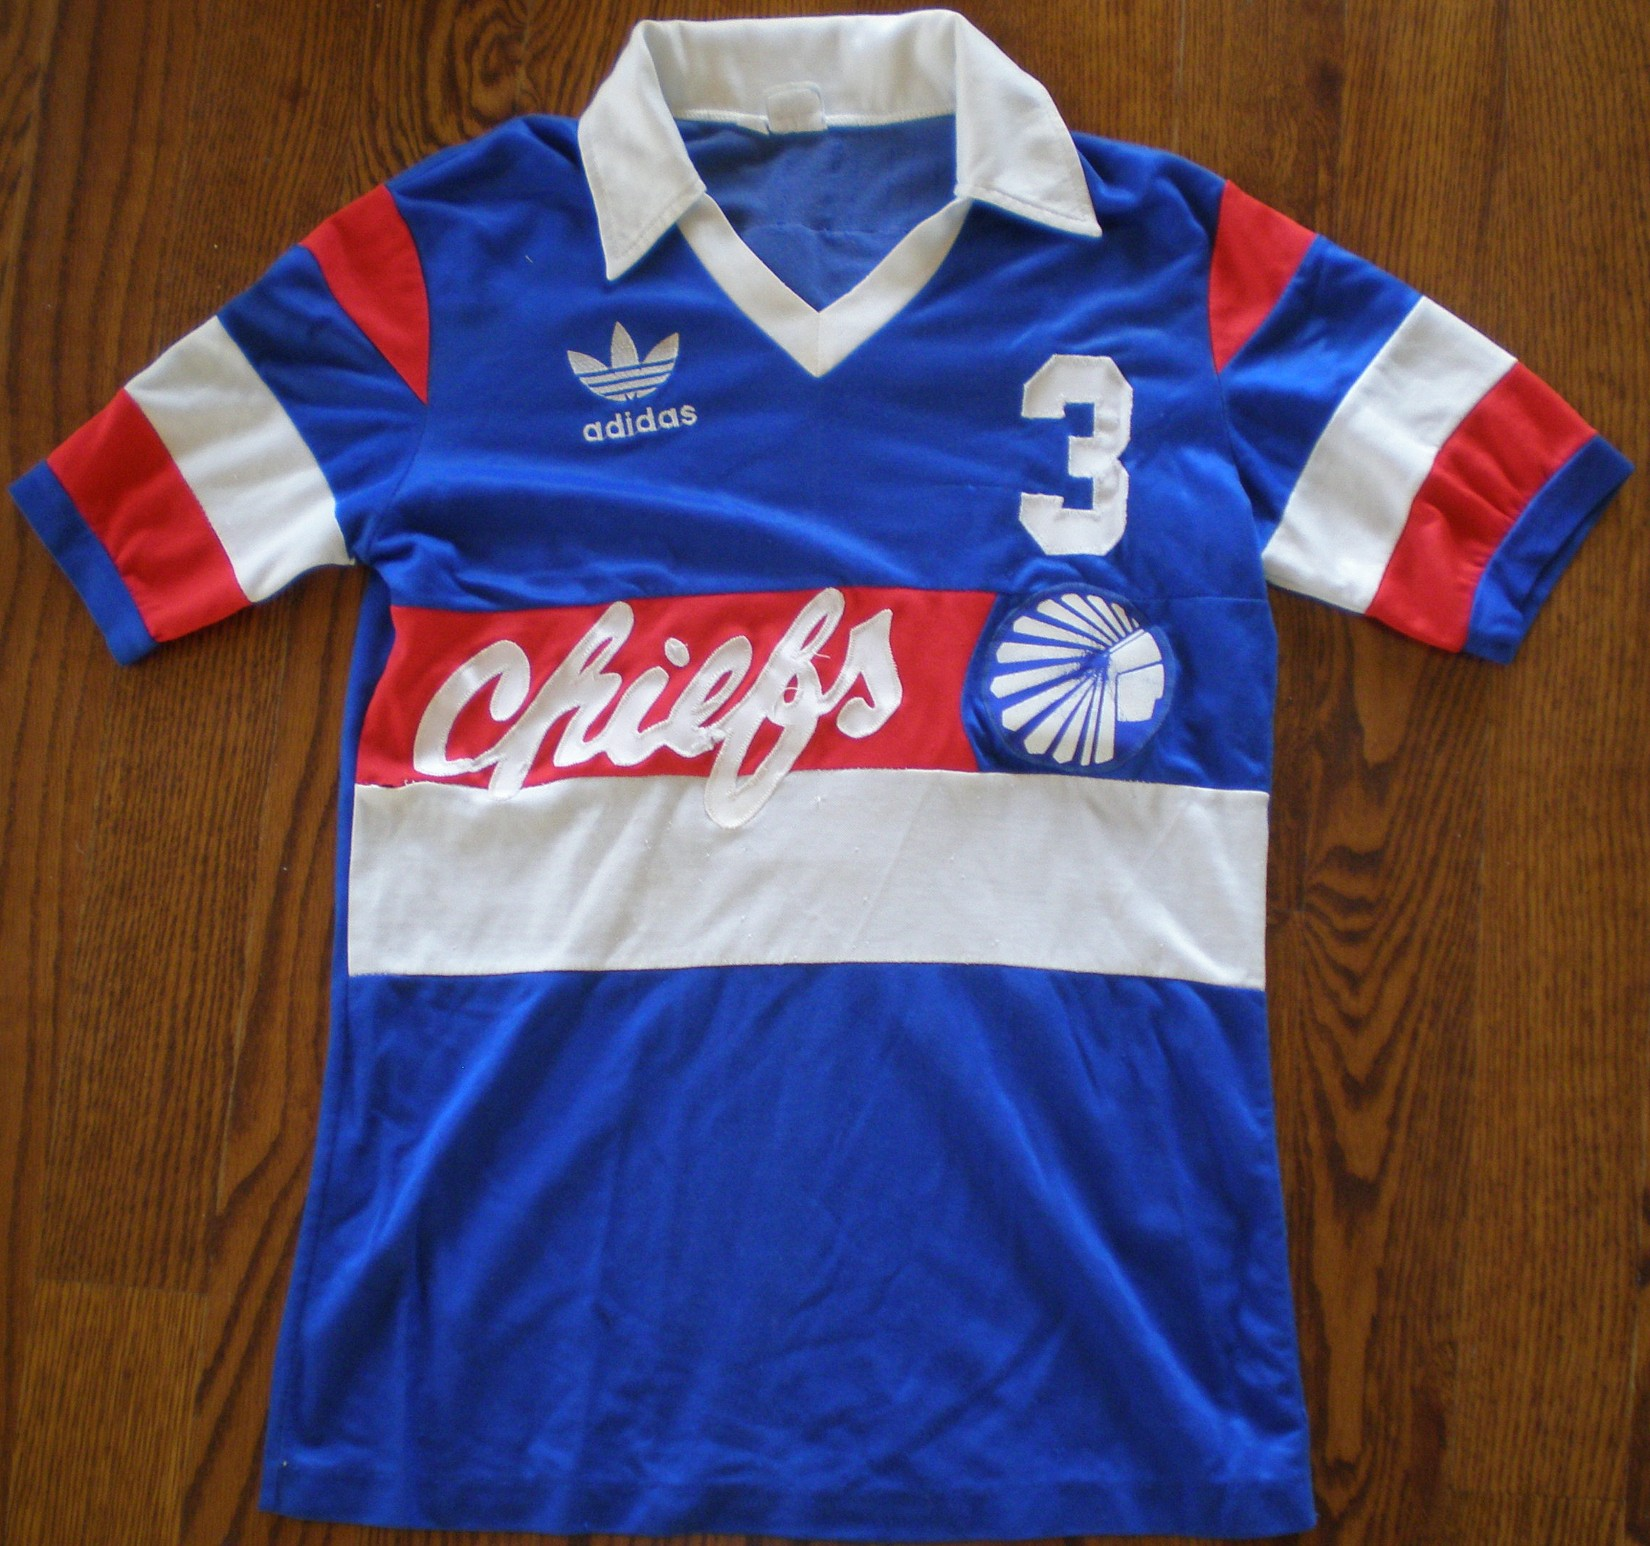 Chiefs 80-81 Road Jersey Mark MacKain.JPG